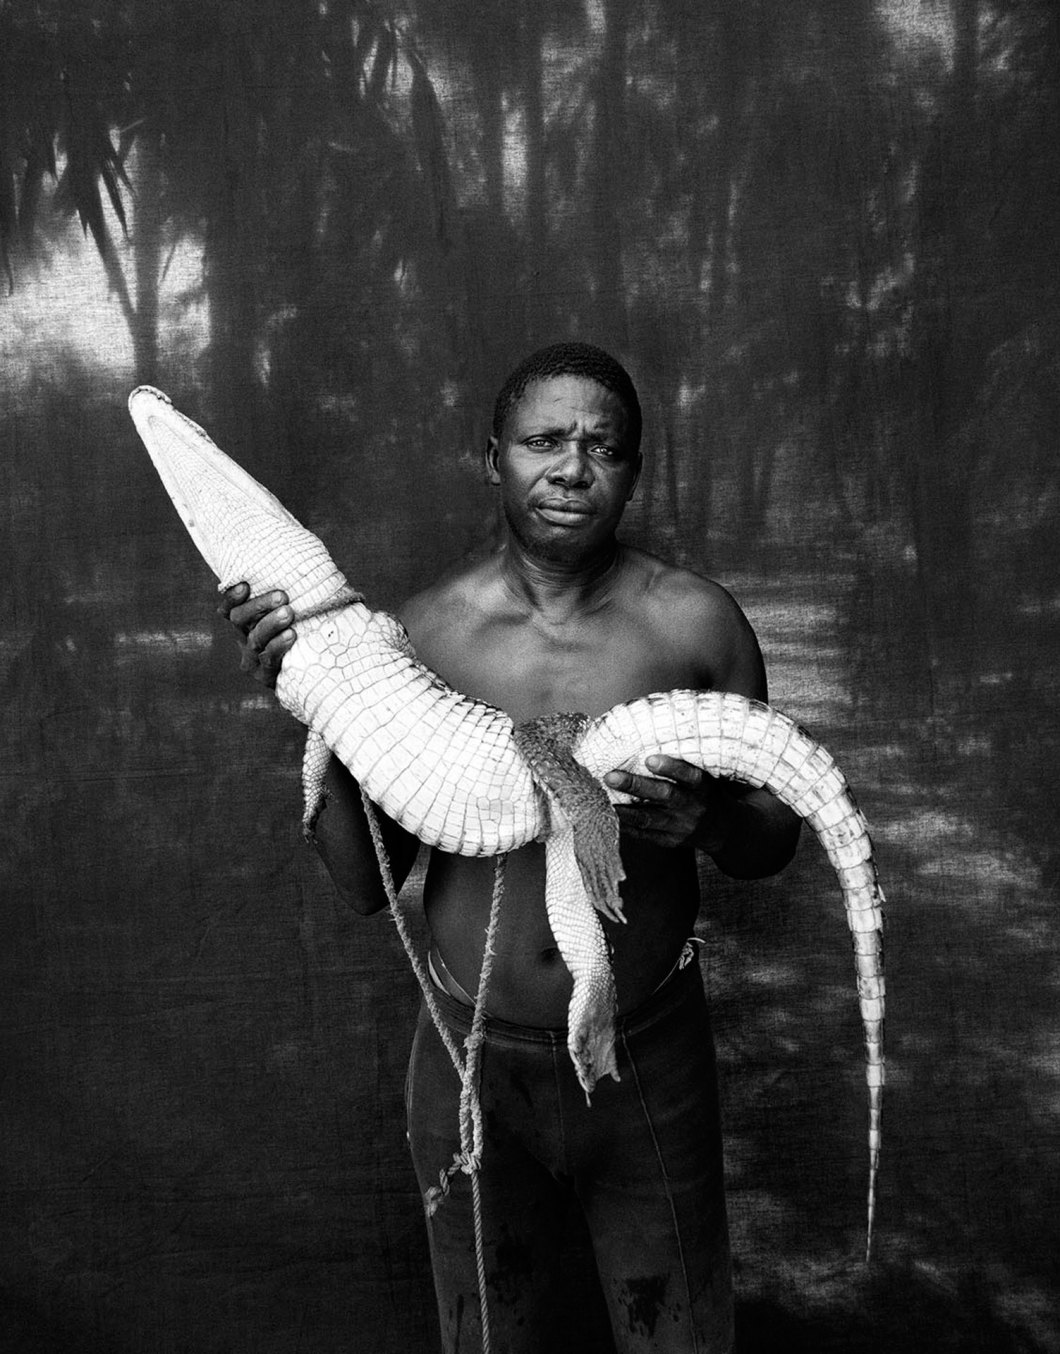 Jason Florio photography - black and white image from the Makasutu series of portraits - A Gambian man stands against a transparent black background, in the jungle, staring at the camera, holding a rescued crocodile, West Africa